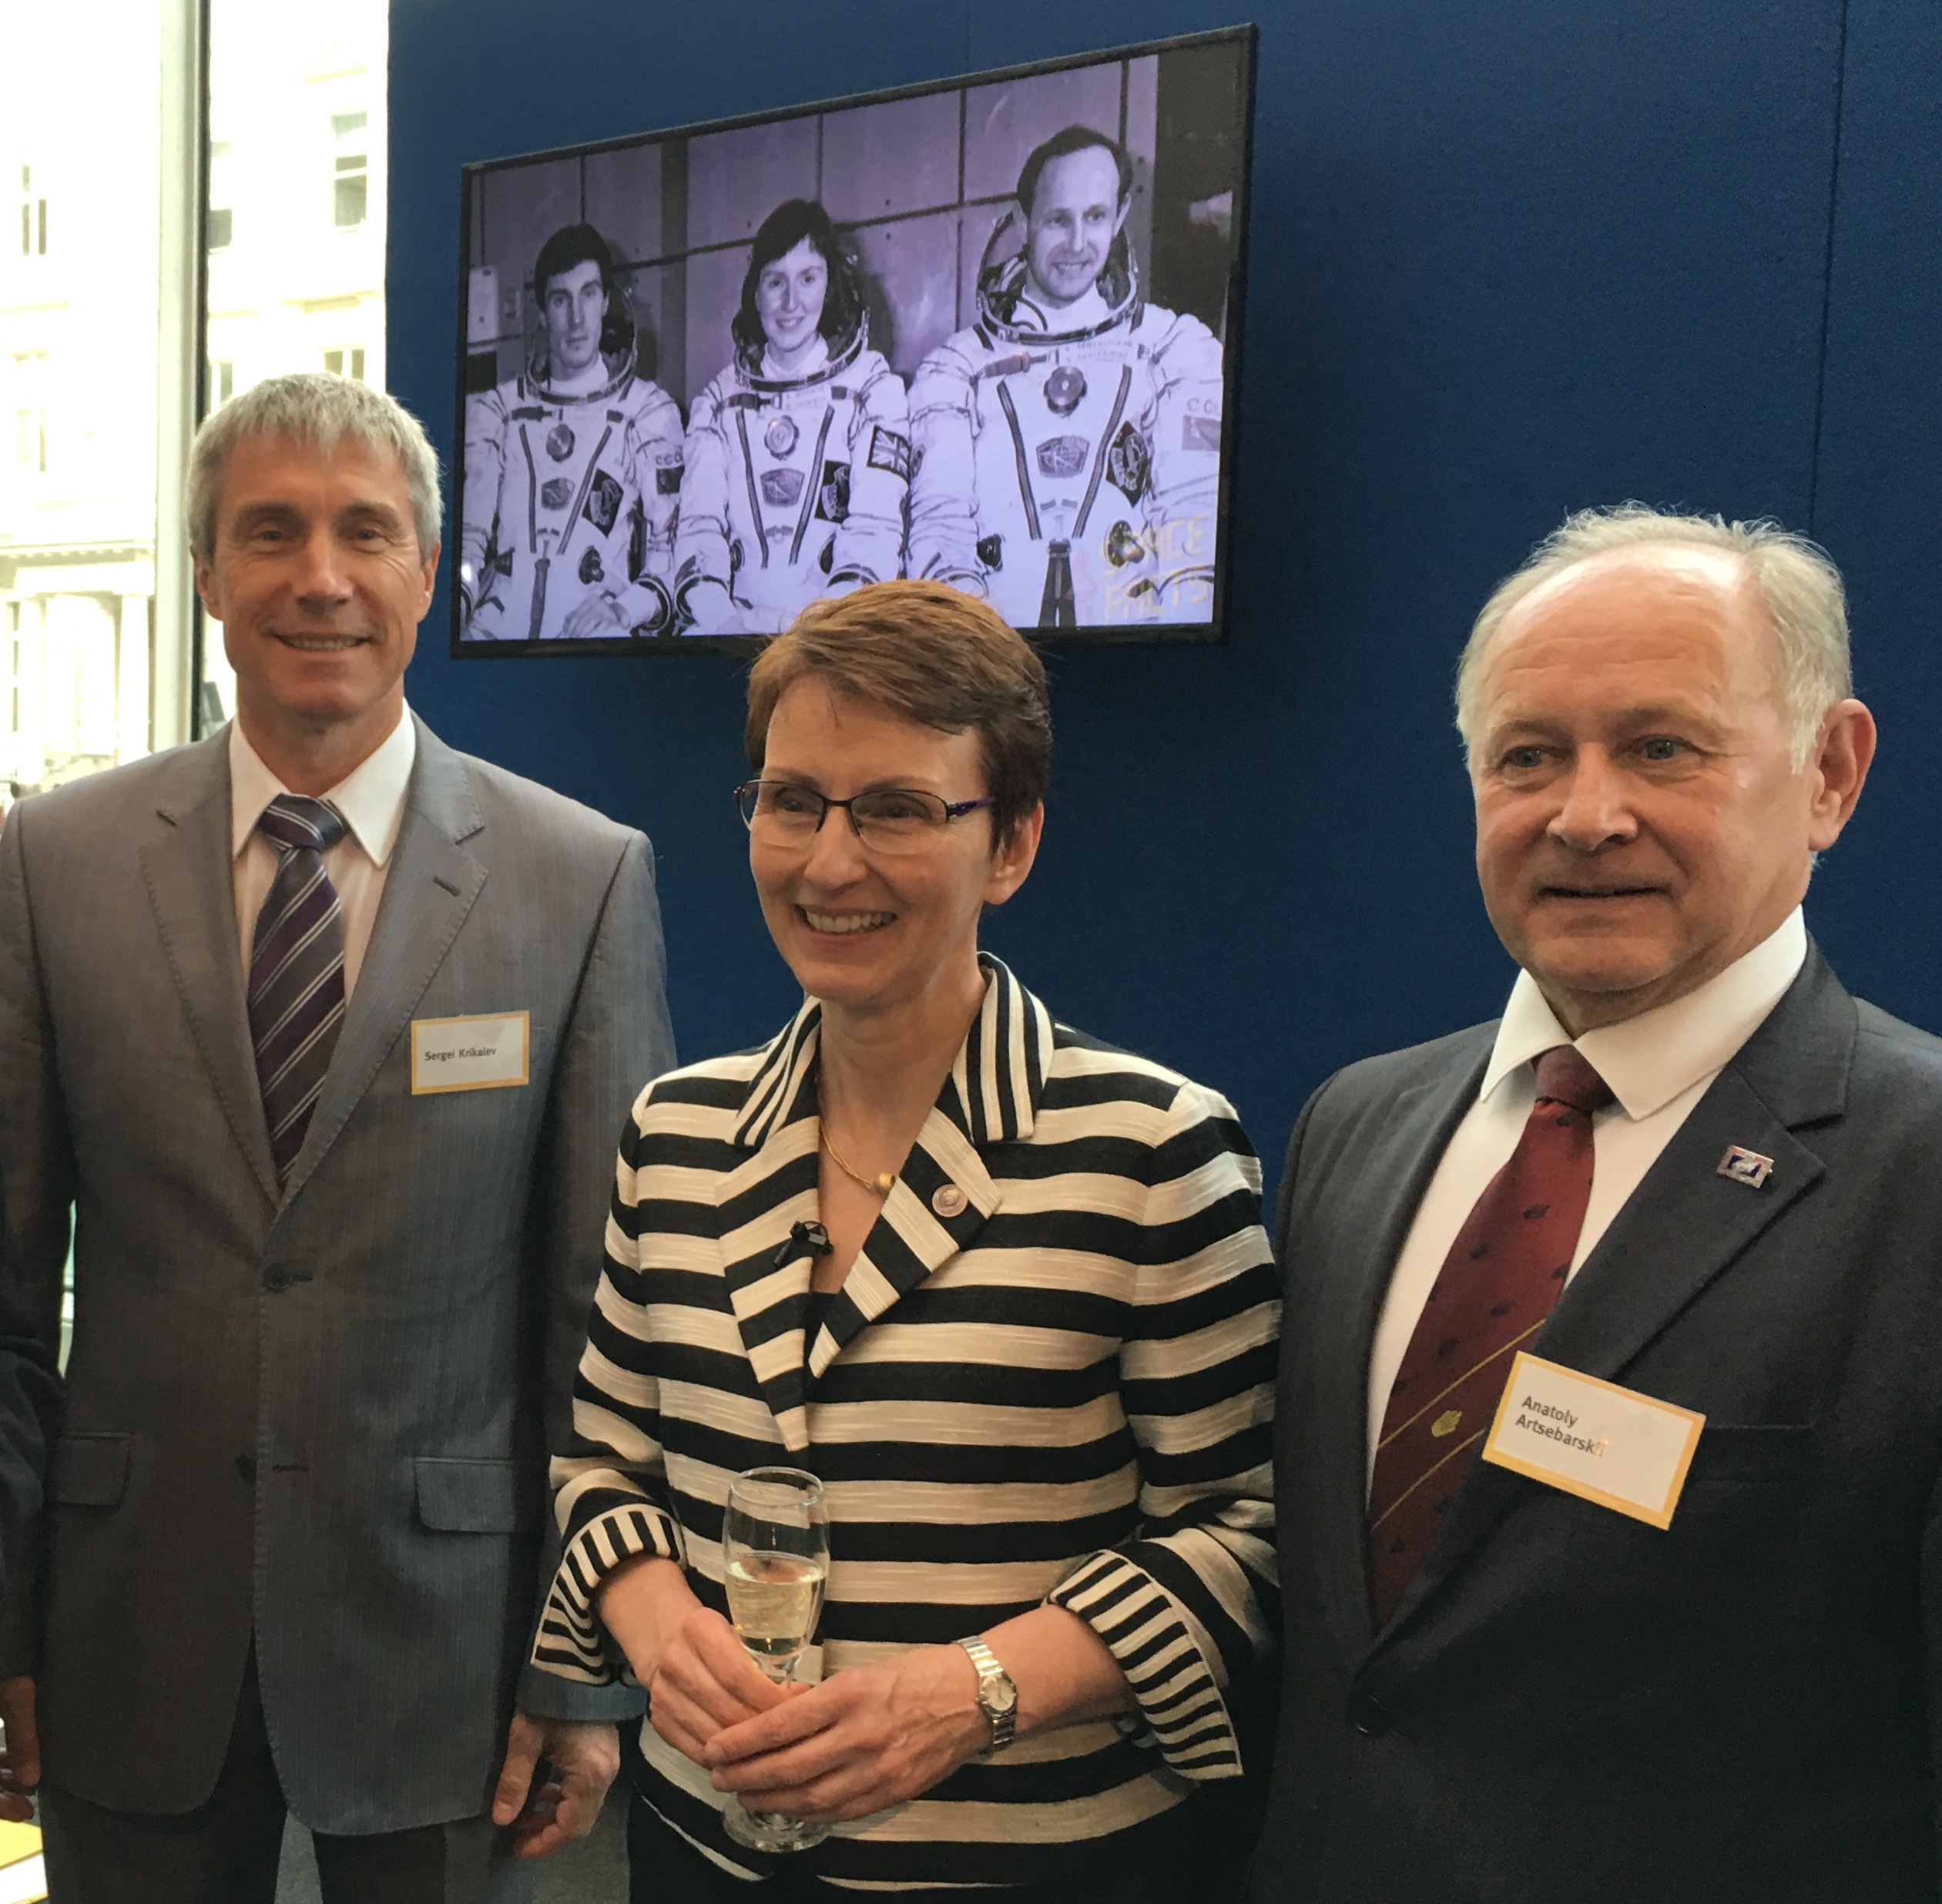 The Soyuz TM-12 crew then and now. (Left to right) Sergei Krikalev, Helen Sharman and Anatoly Artsebarski with their crew photo from 1991 appearing on the screen behind.